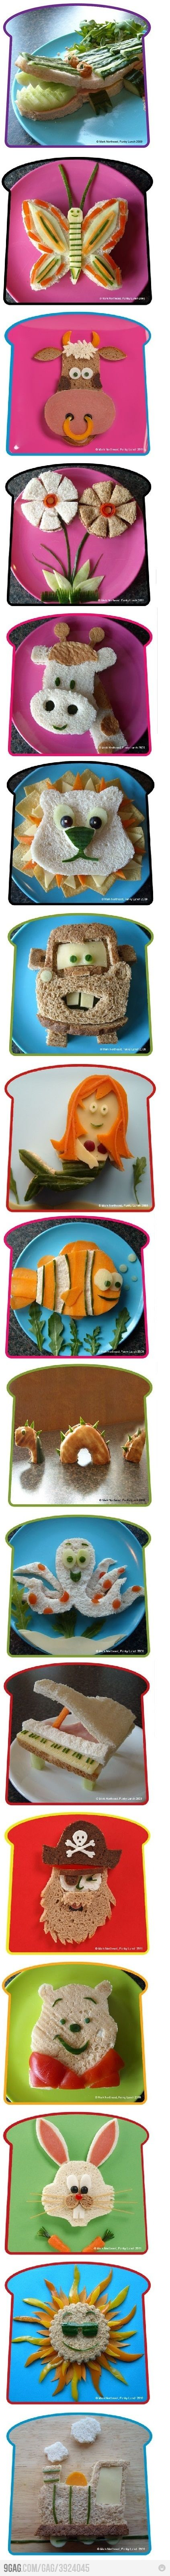 Sandwich: Fun Lunches, Fun Food, Kids Lunches, Kids Sandwiches, For Kids, Lunches Ideas, Sandwiches Ideas, Food Art, Kids Food